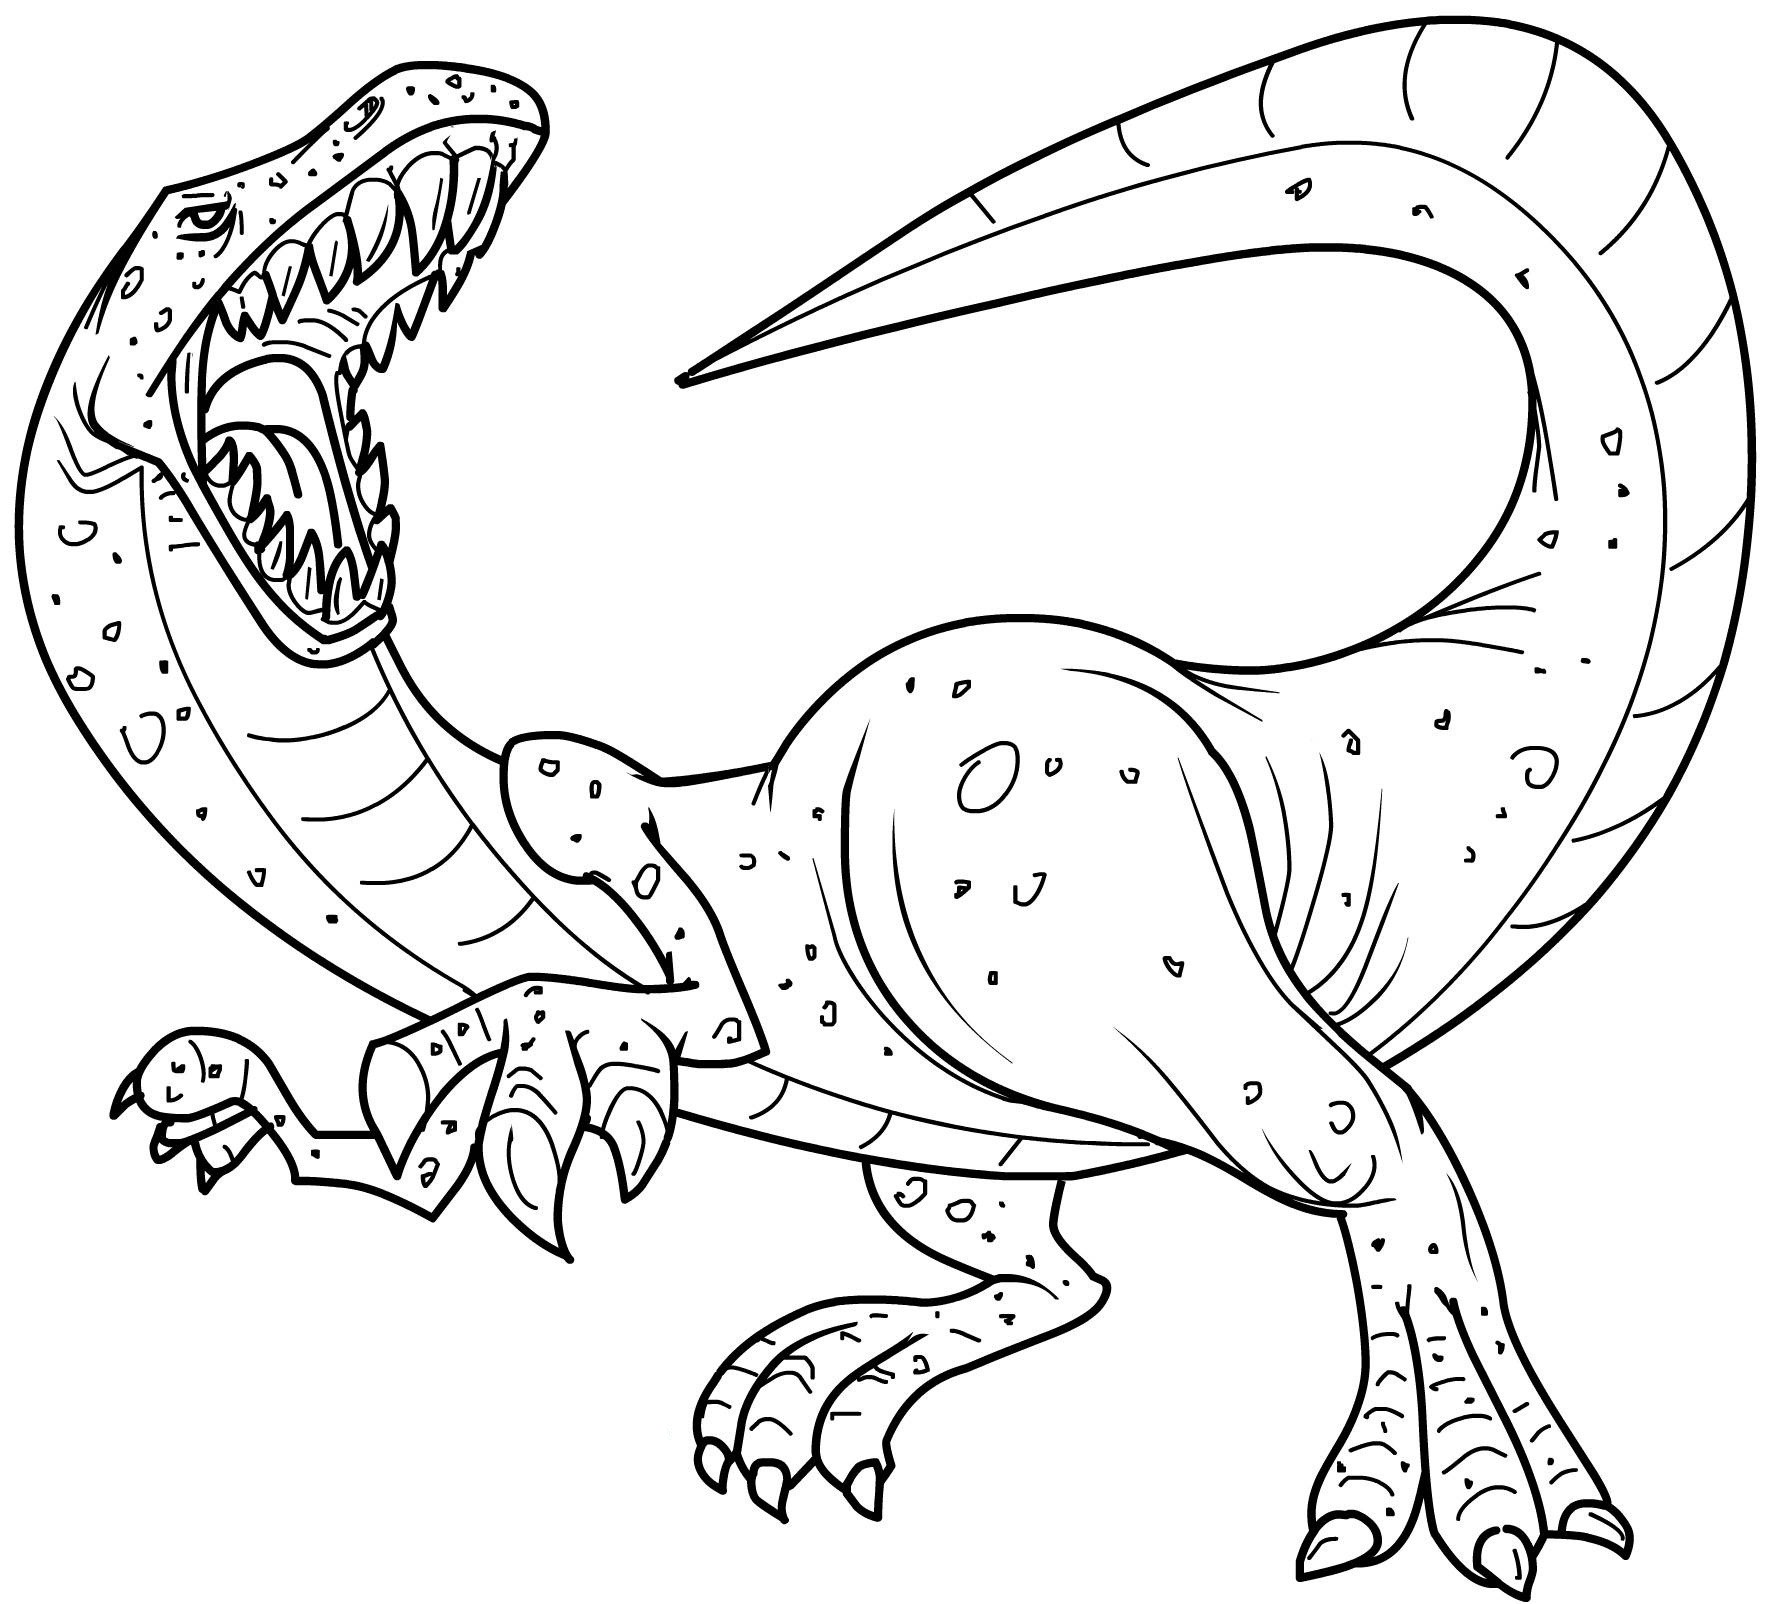 Free coloring pages to print and color - Dinosaurs Coloring Pages Free Printables